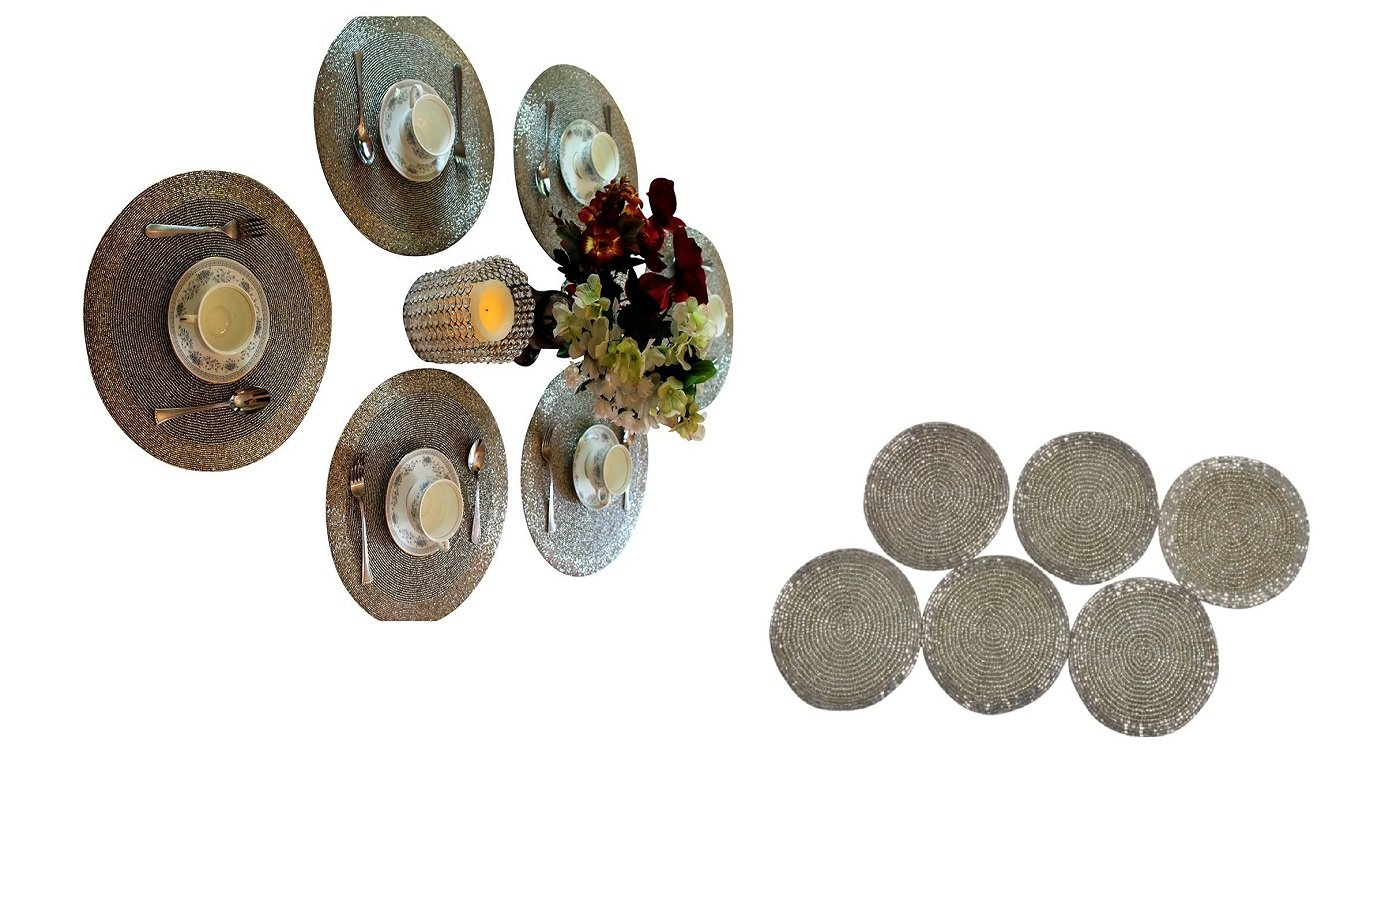 Silver Finish Glass Beads Braided Round Tabletop Decor Placemats and Coasters Set of 12 by GARIAN